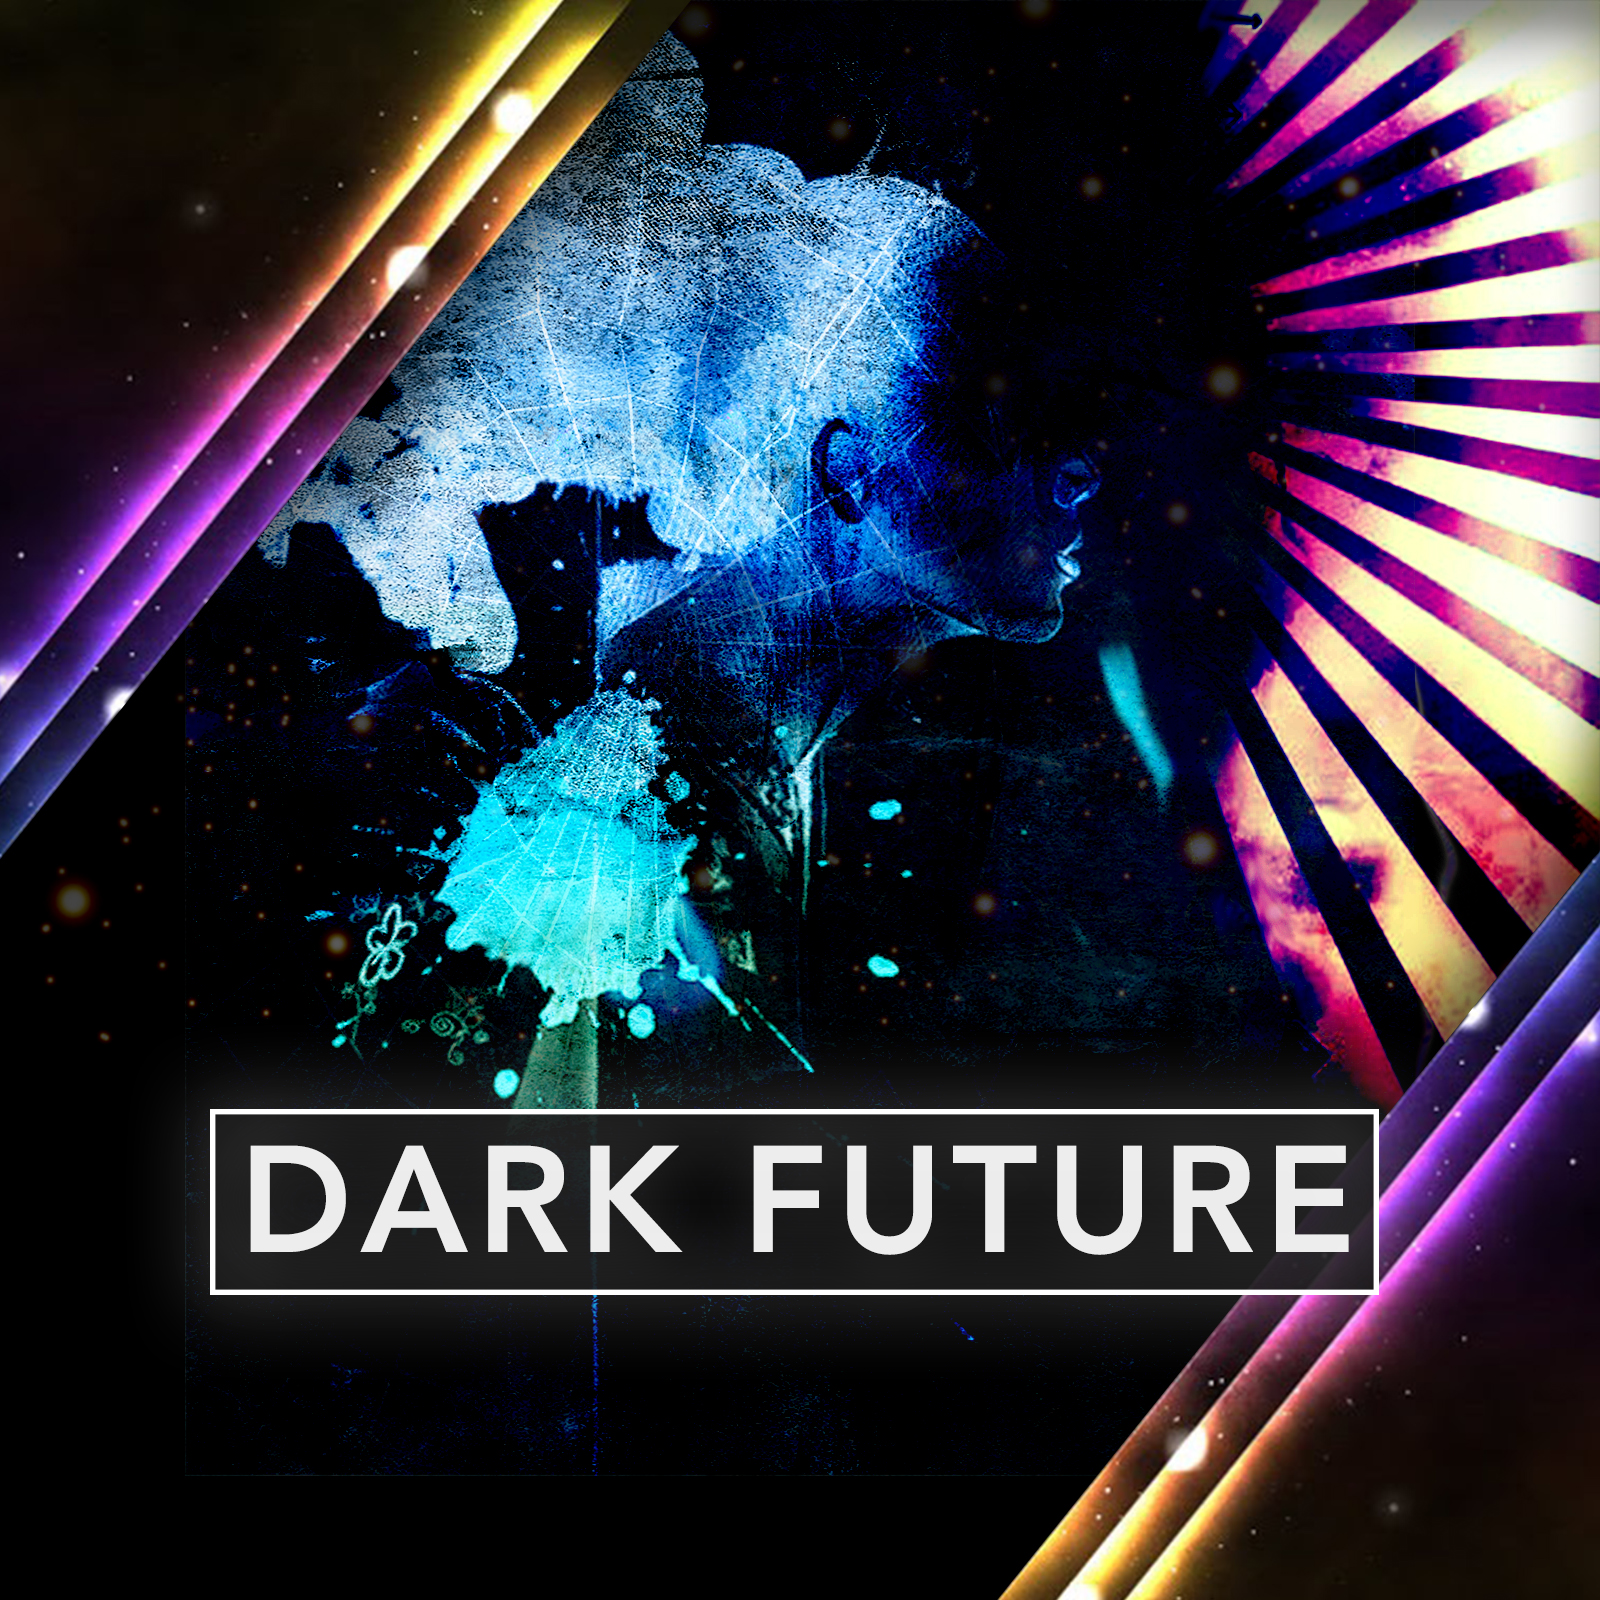 Dark Future Cover Art.jpg